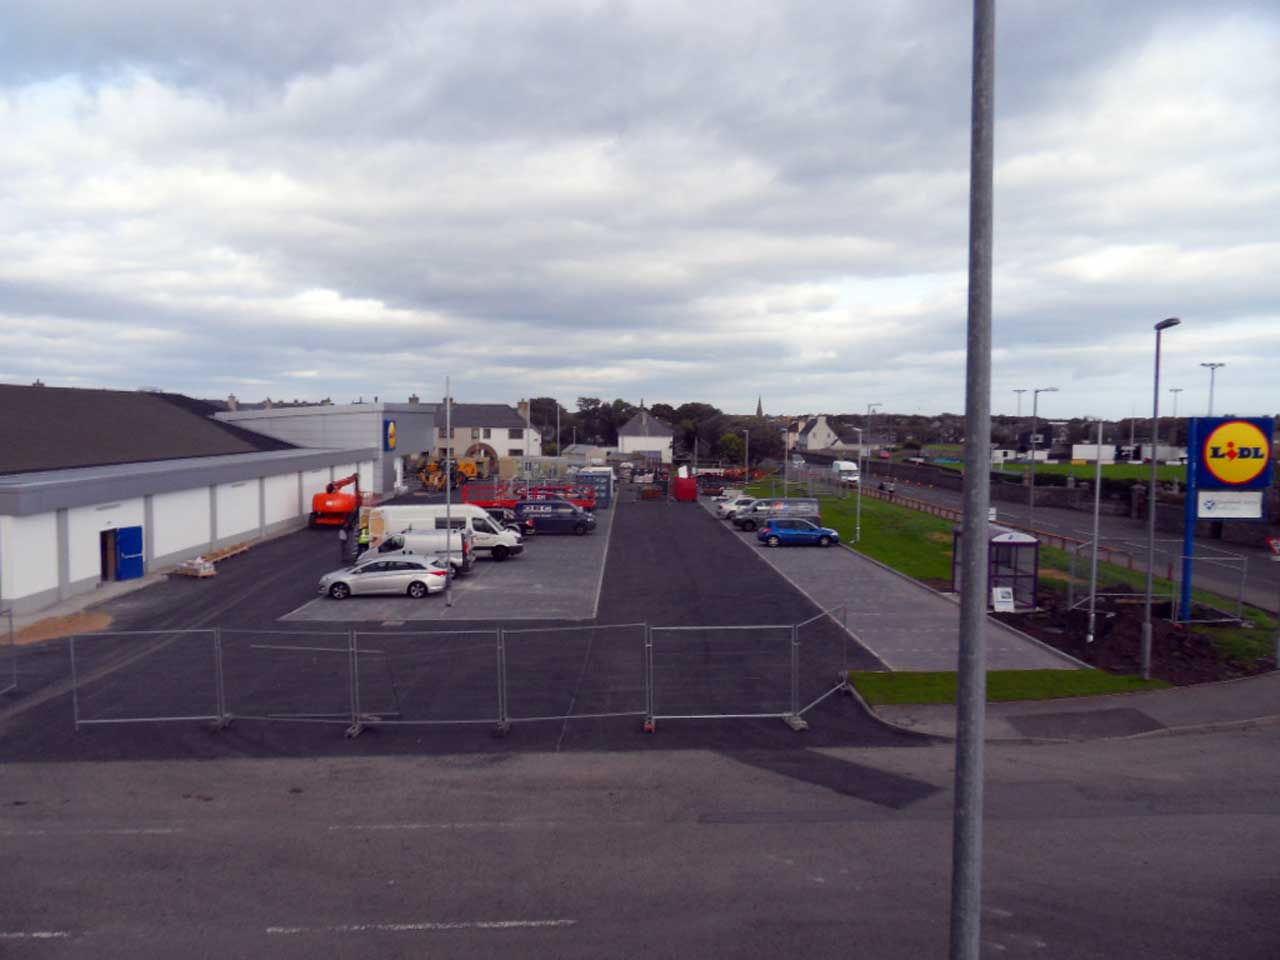 Photo: Lidl Extension Nears Completion, Wick - 27 September 2014